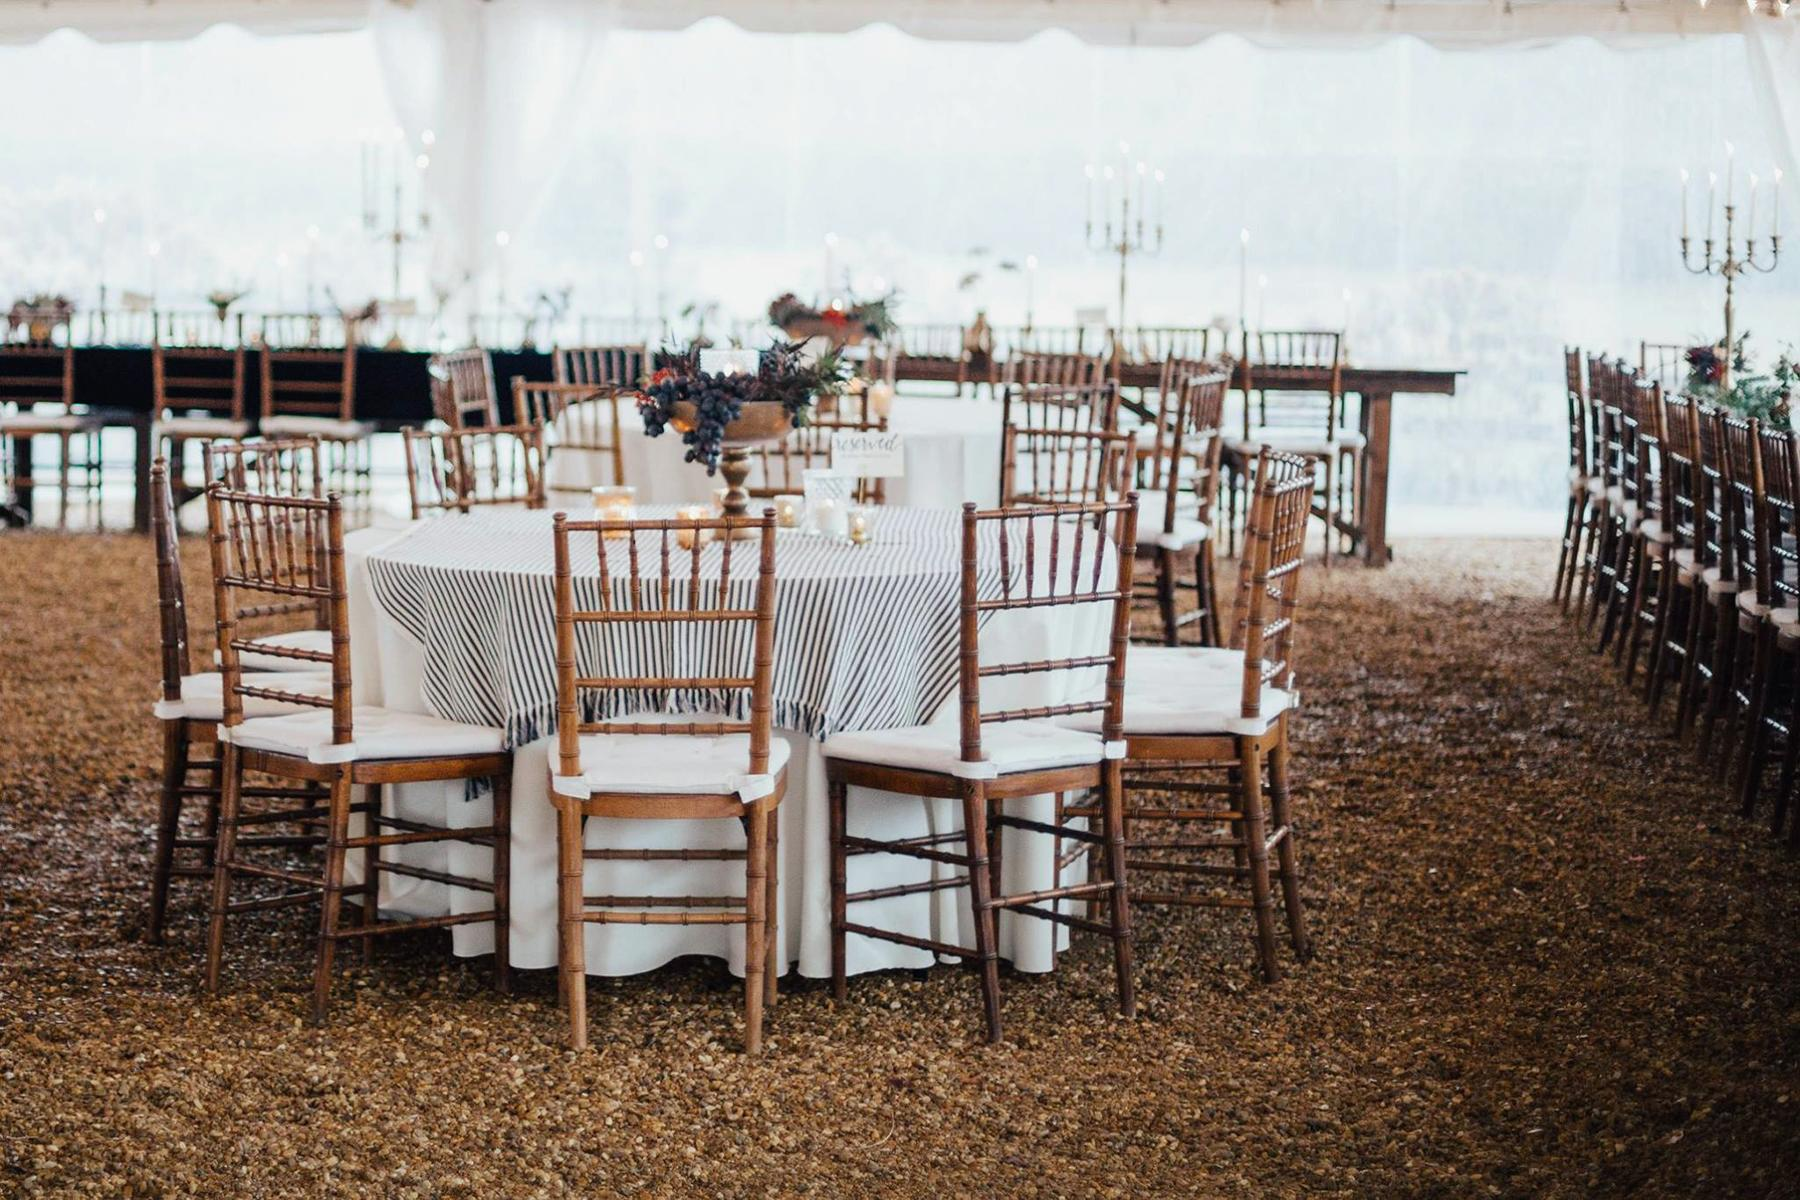 11_RusticWeddingVenues__SweetMeadowFarm_49789474_1184381565044344_1112429673926623232_o